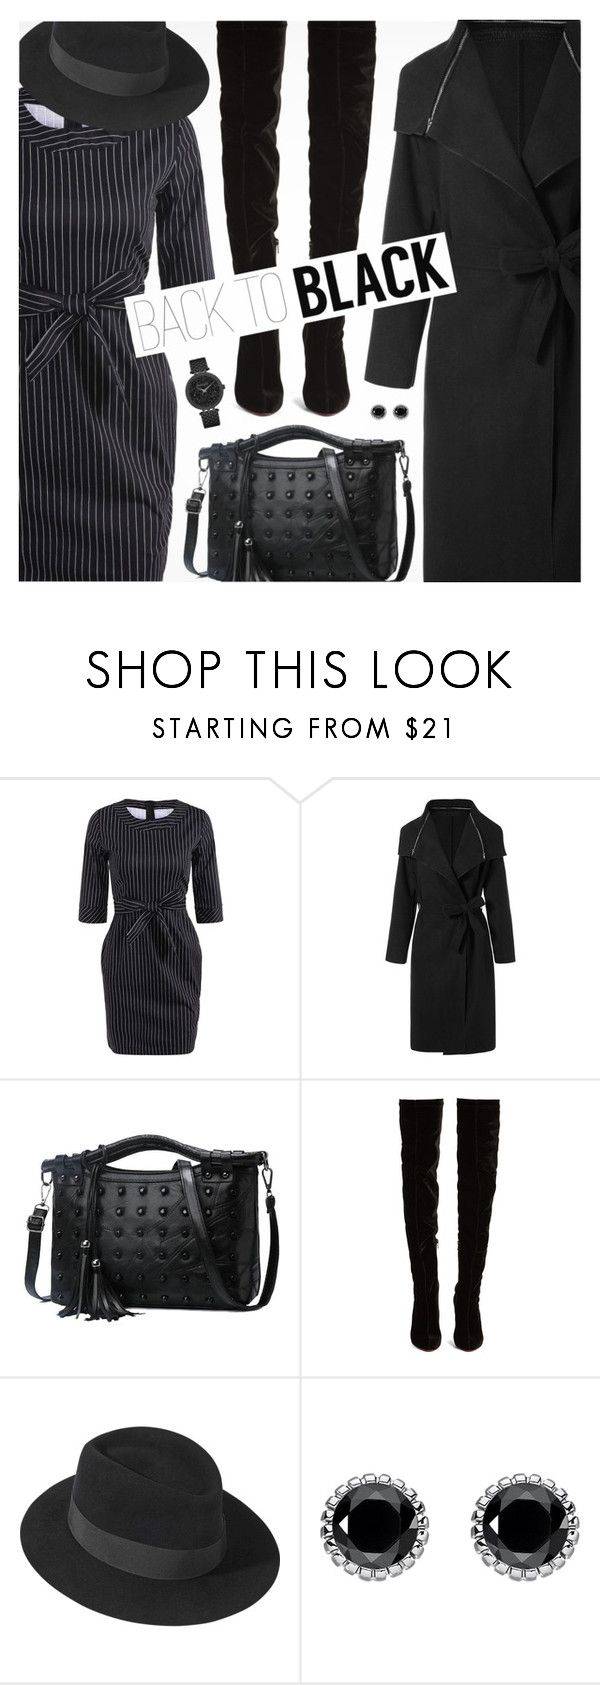 """""""Mission Monochrome: All-Black Outfit"""" by pokadoll ❤ liked on Polyvore featuring Christian Louboutin, Maison Michel, Thomas Sabo and Caravelle by Bulova"""